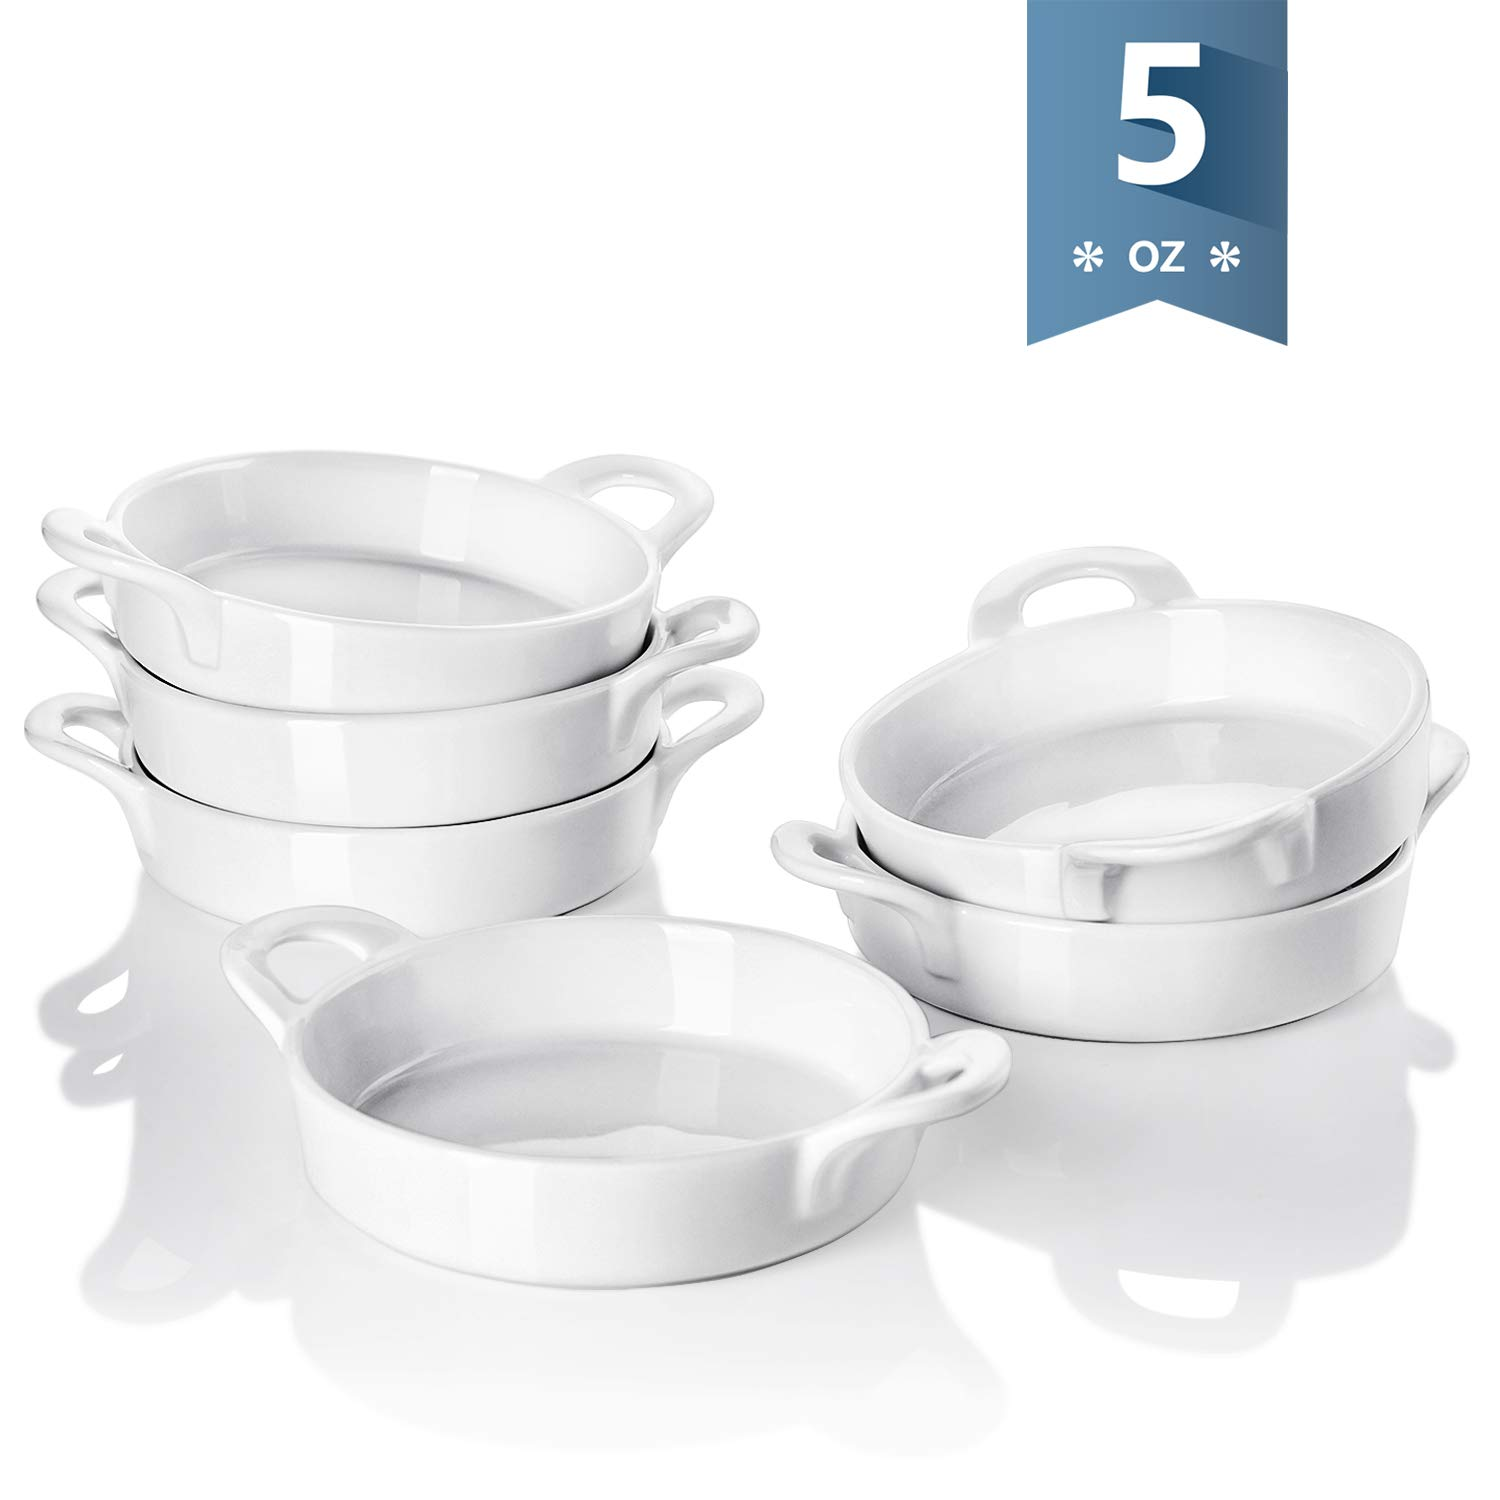 Sweese 5116 Porcelain Ramekins, 5 oz Ramekins for Baking, Round Creme Brulee Dish with Double Handle-Set of 6, White by Sweese (Image #1)